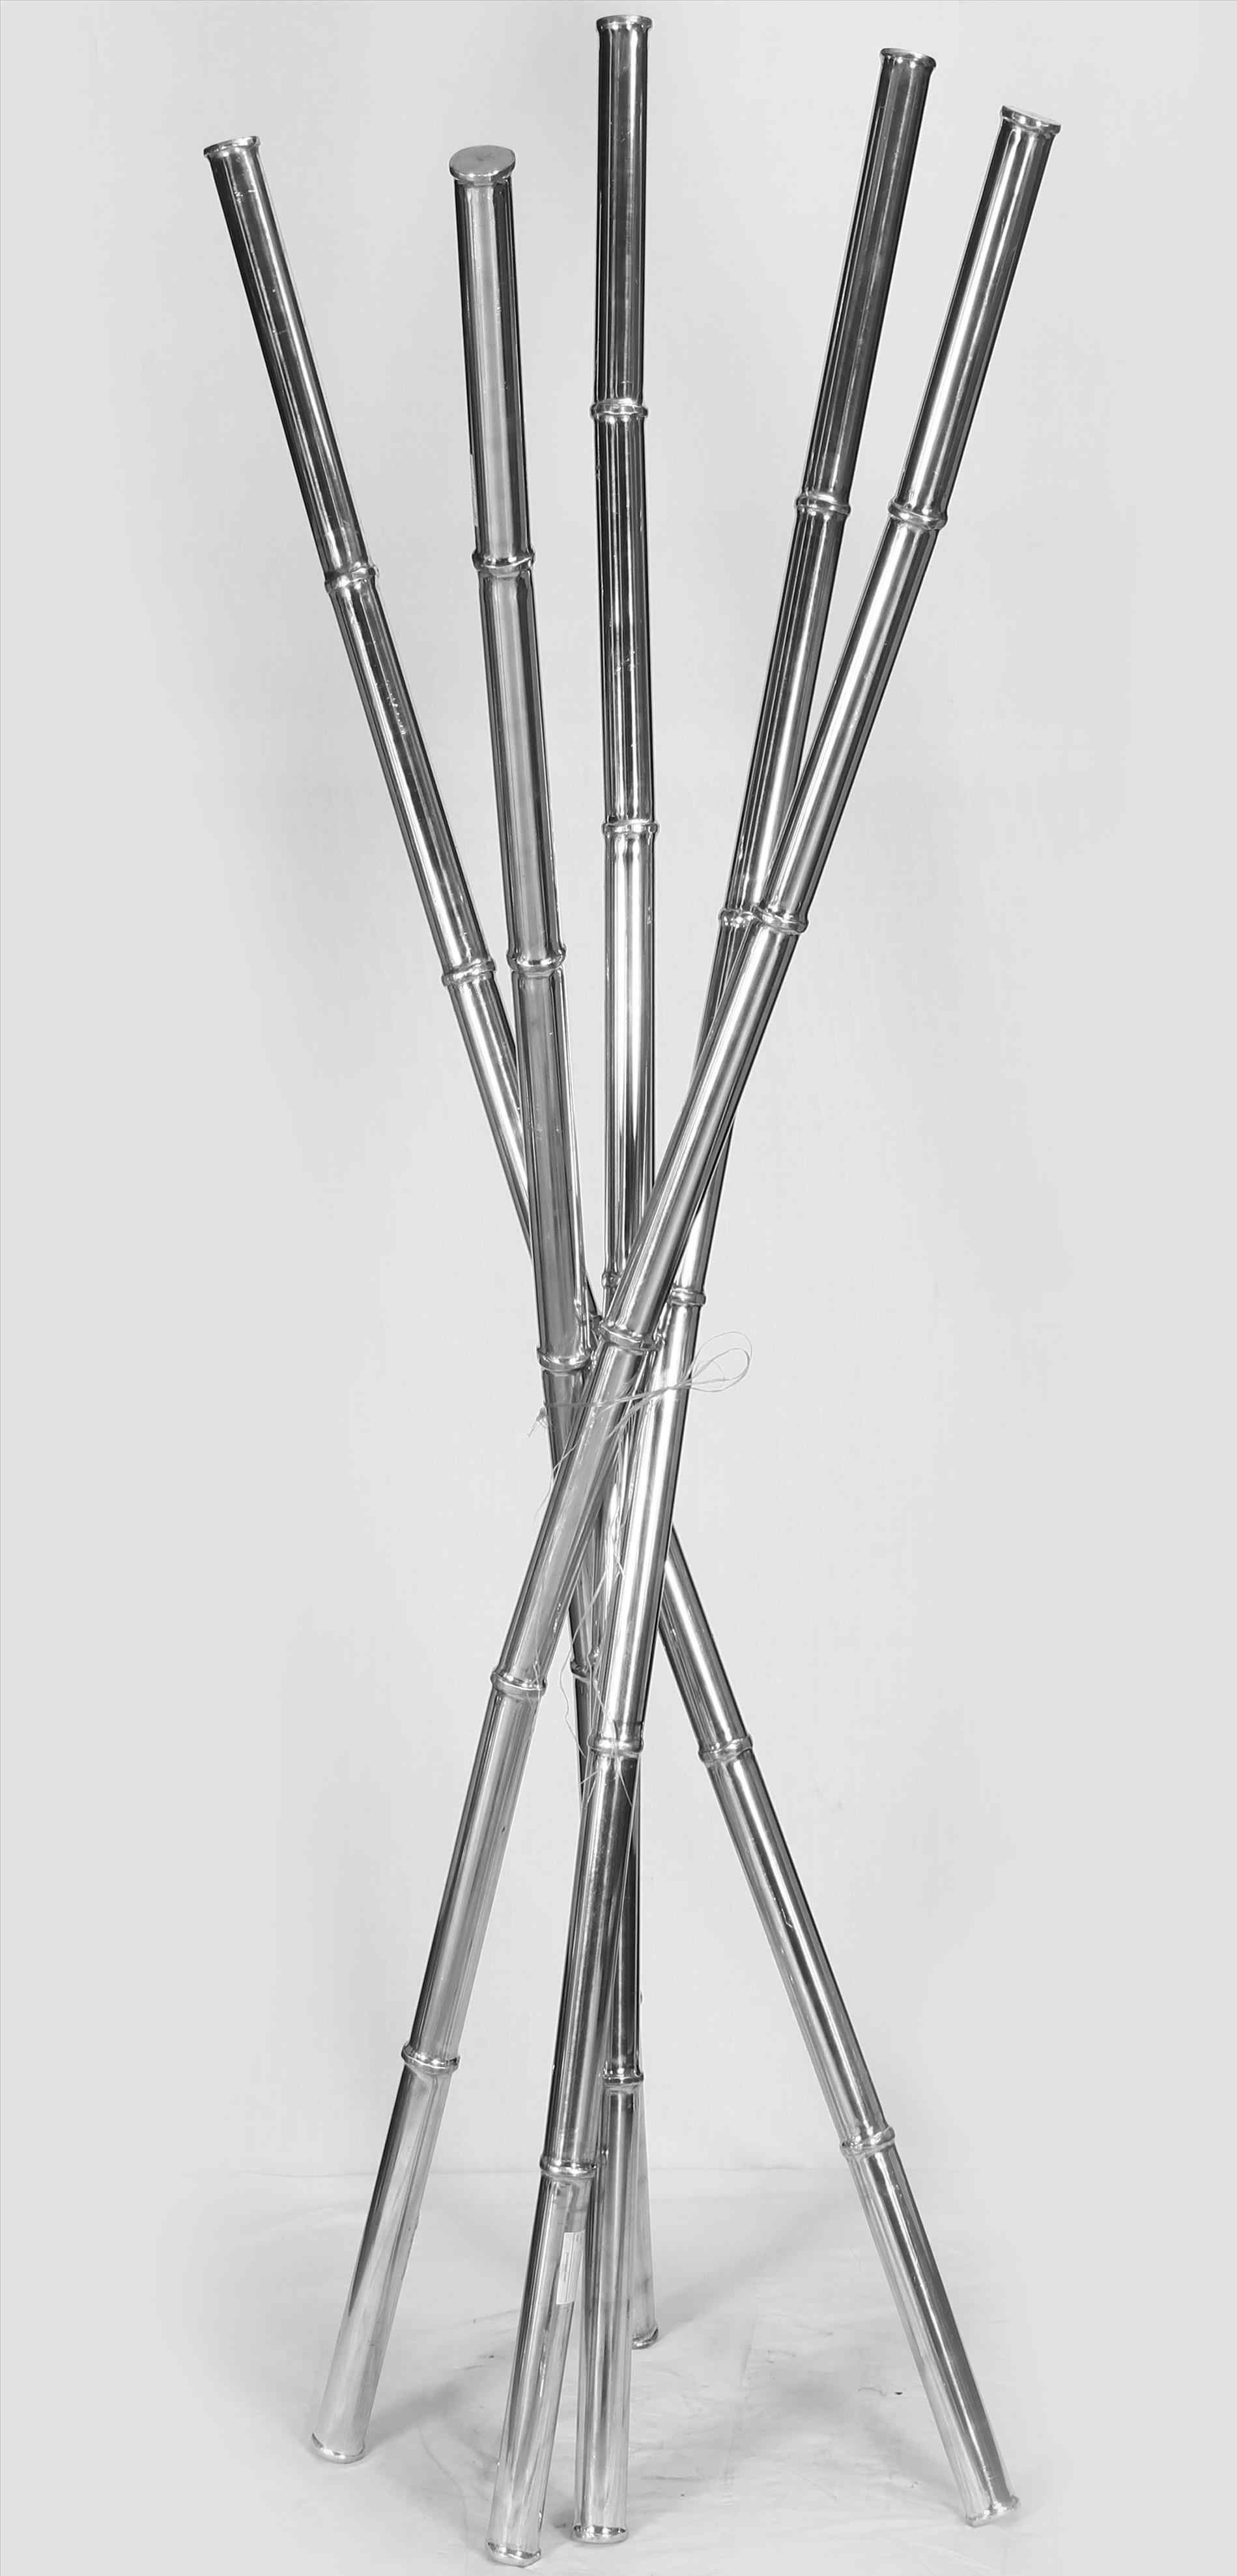 bamboo vases online india of bamboo sticks for vases pics excellent decorative sticks for vases for bamboo sticks for vases pics excellent decorative sticks for vases 87 branches india bamboo in